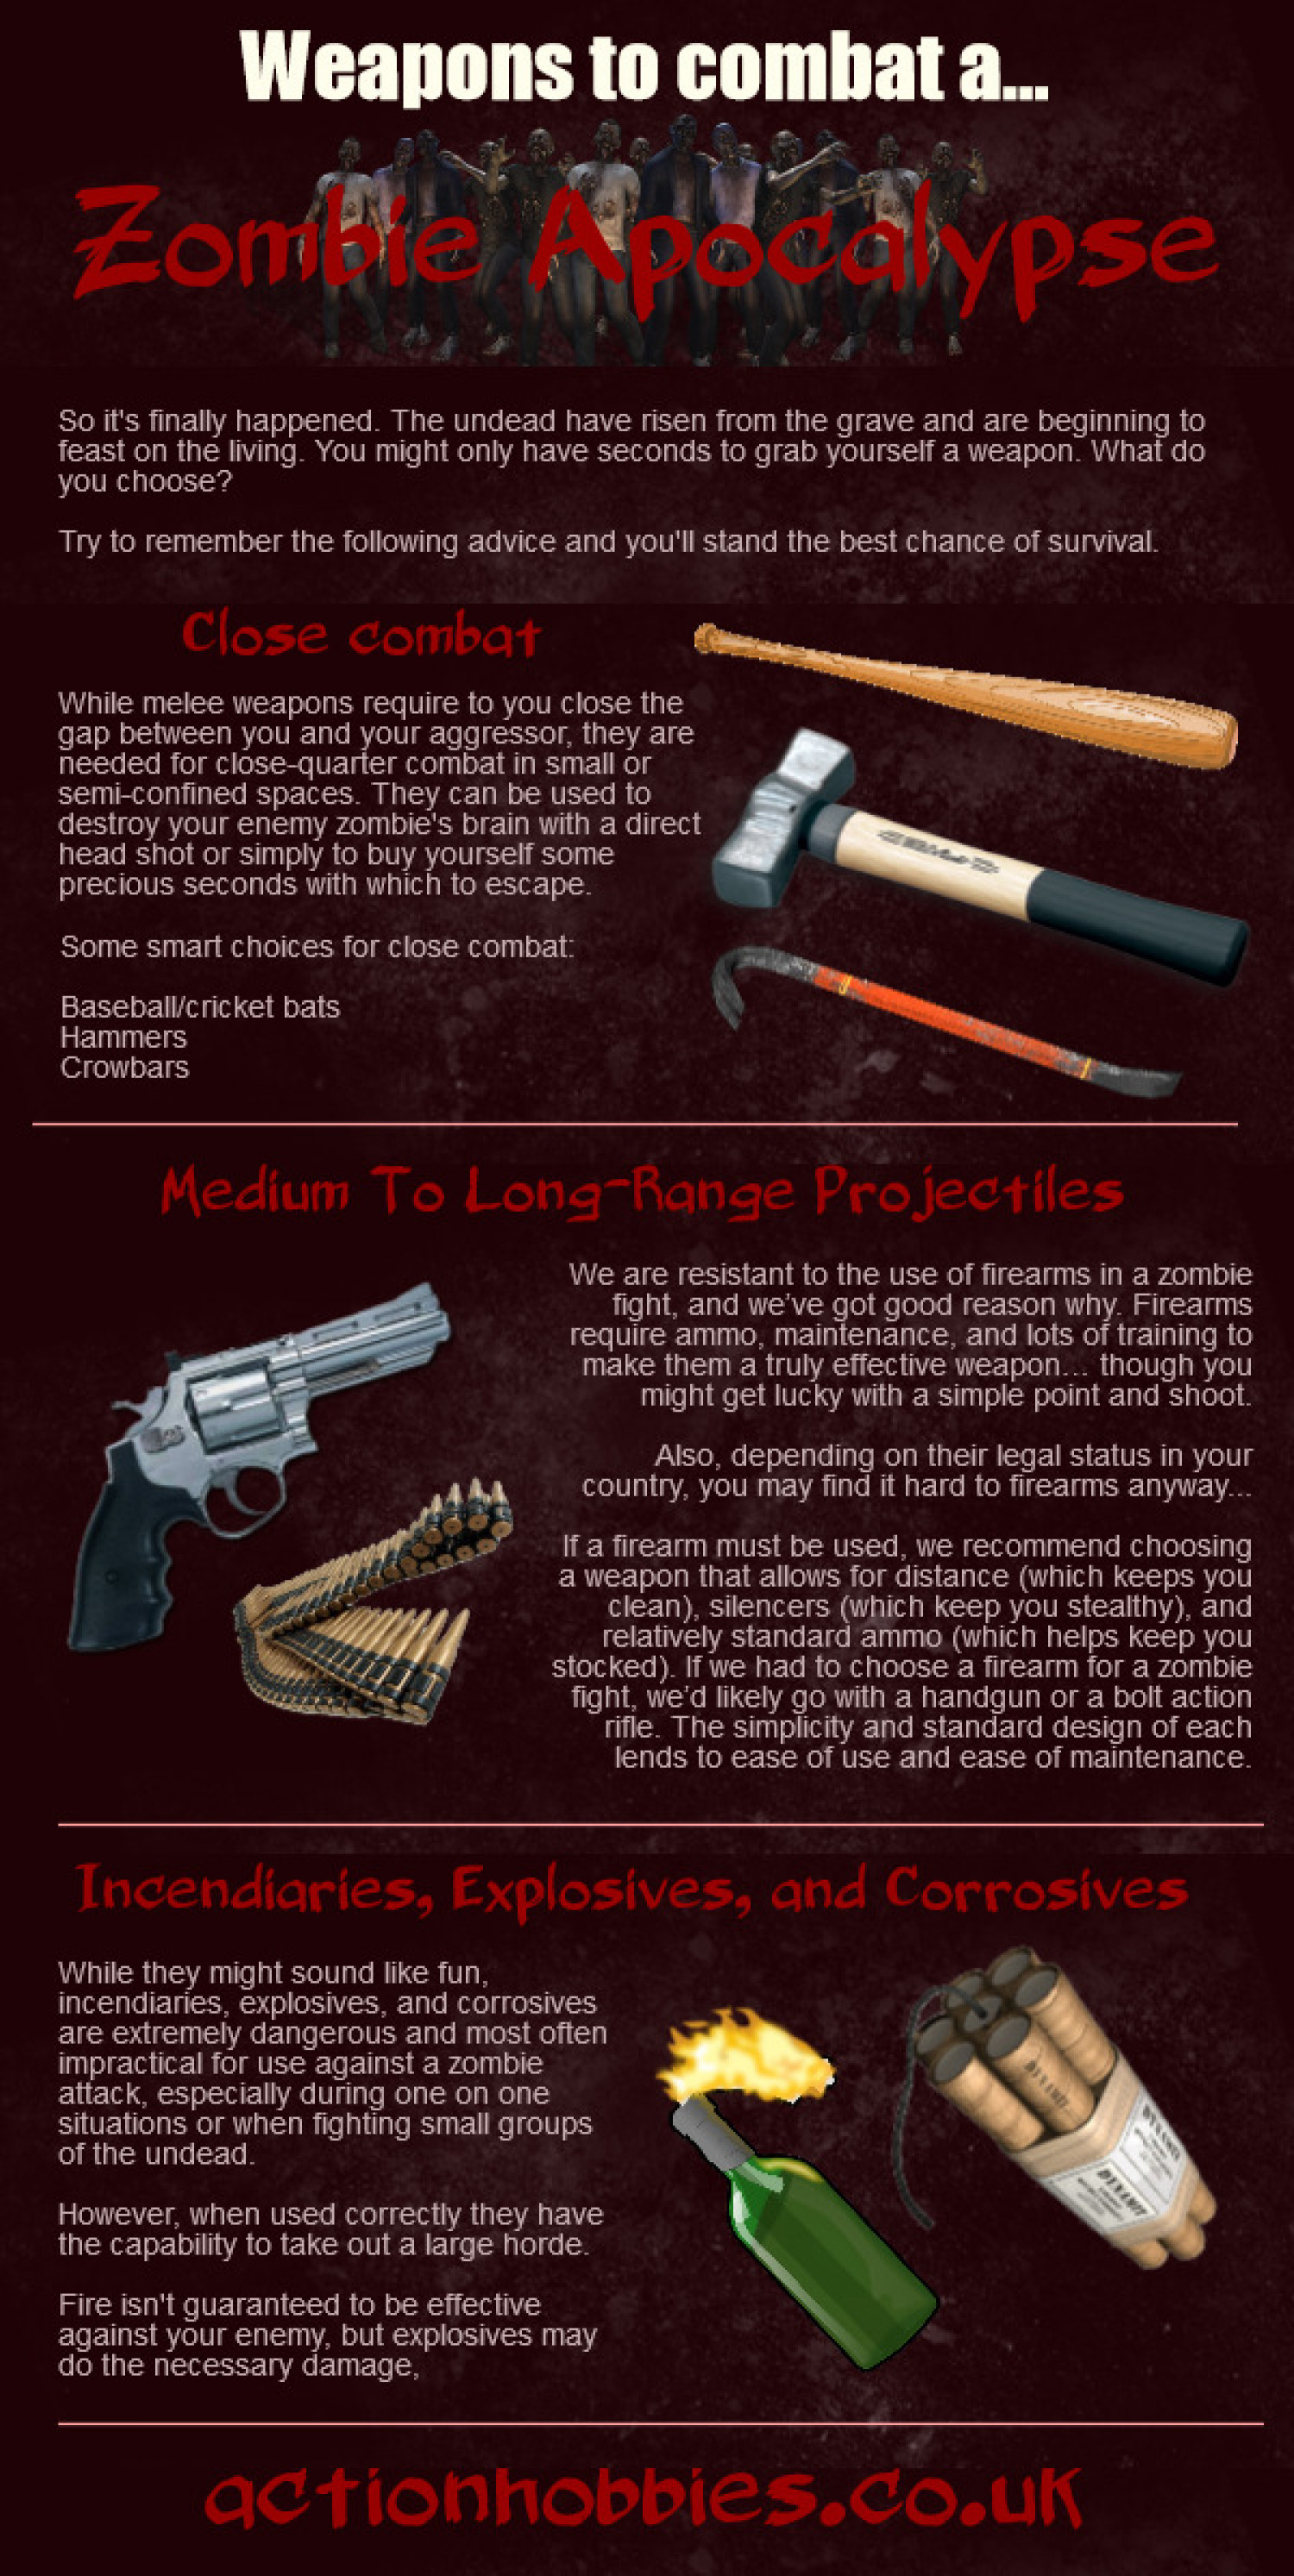 Weapons to Combat a Zombie Apocalypse Infographic